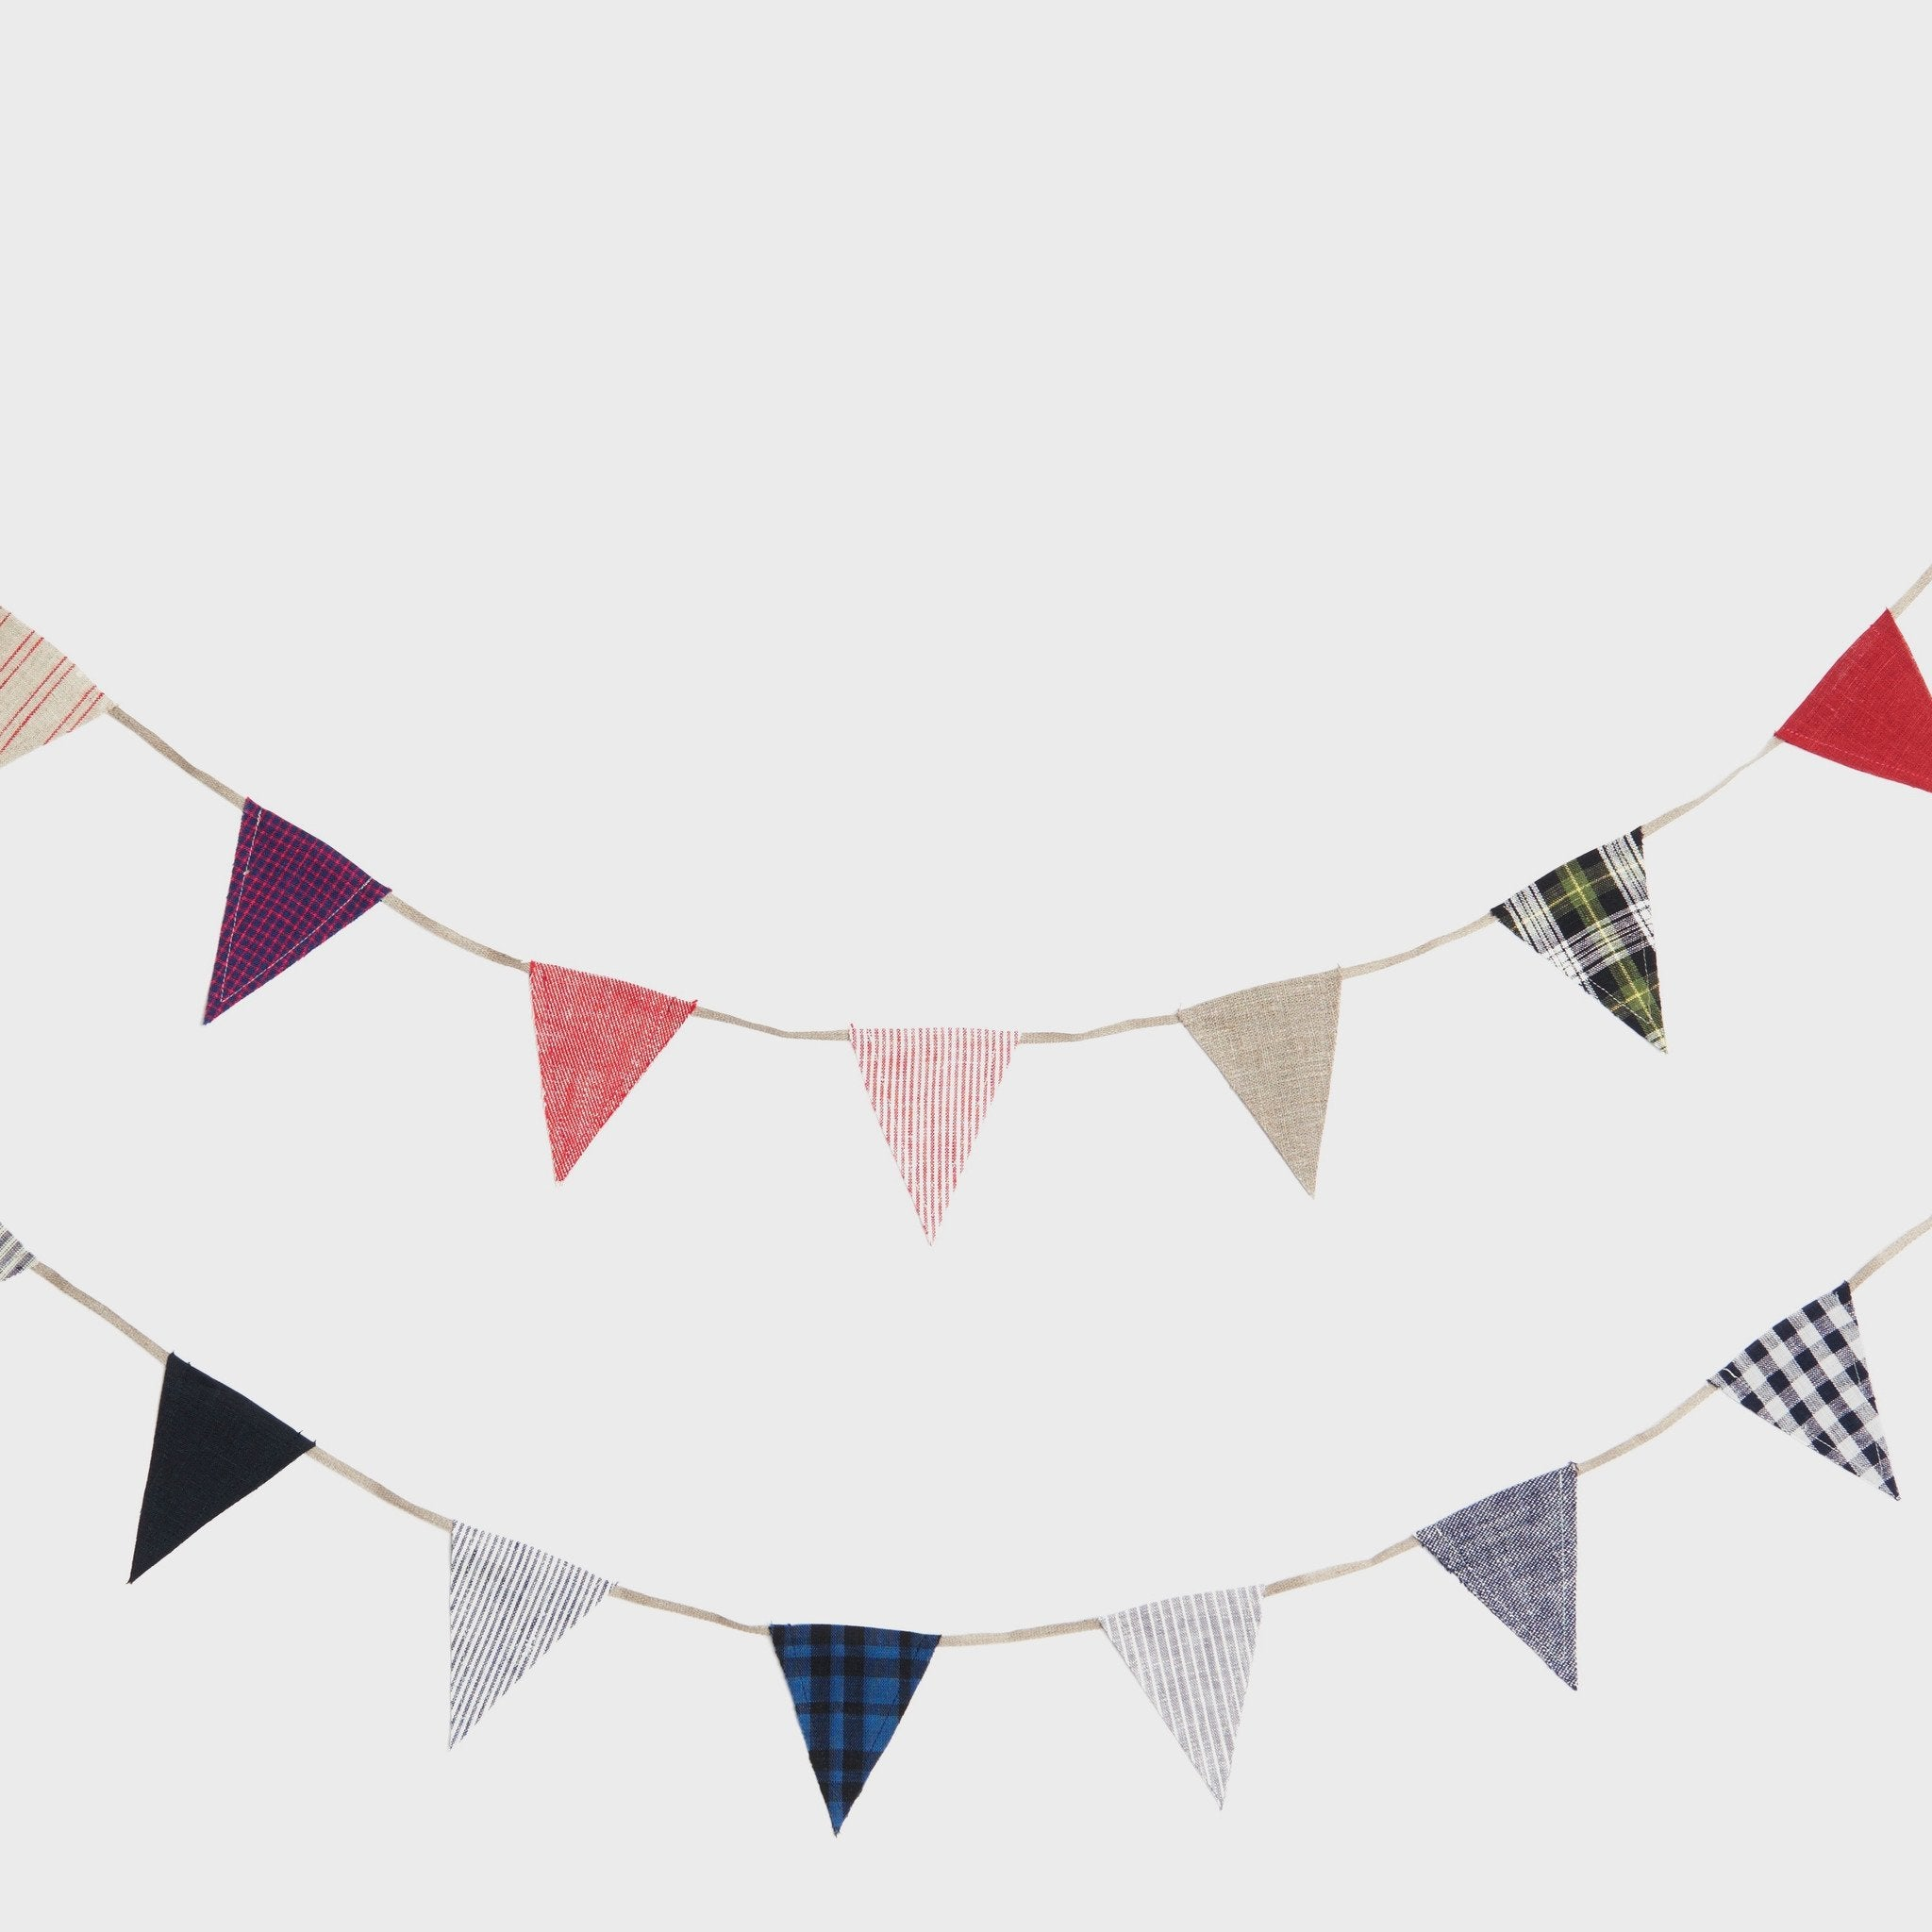 Linen Bunting by Fog Linen Work Japan